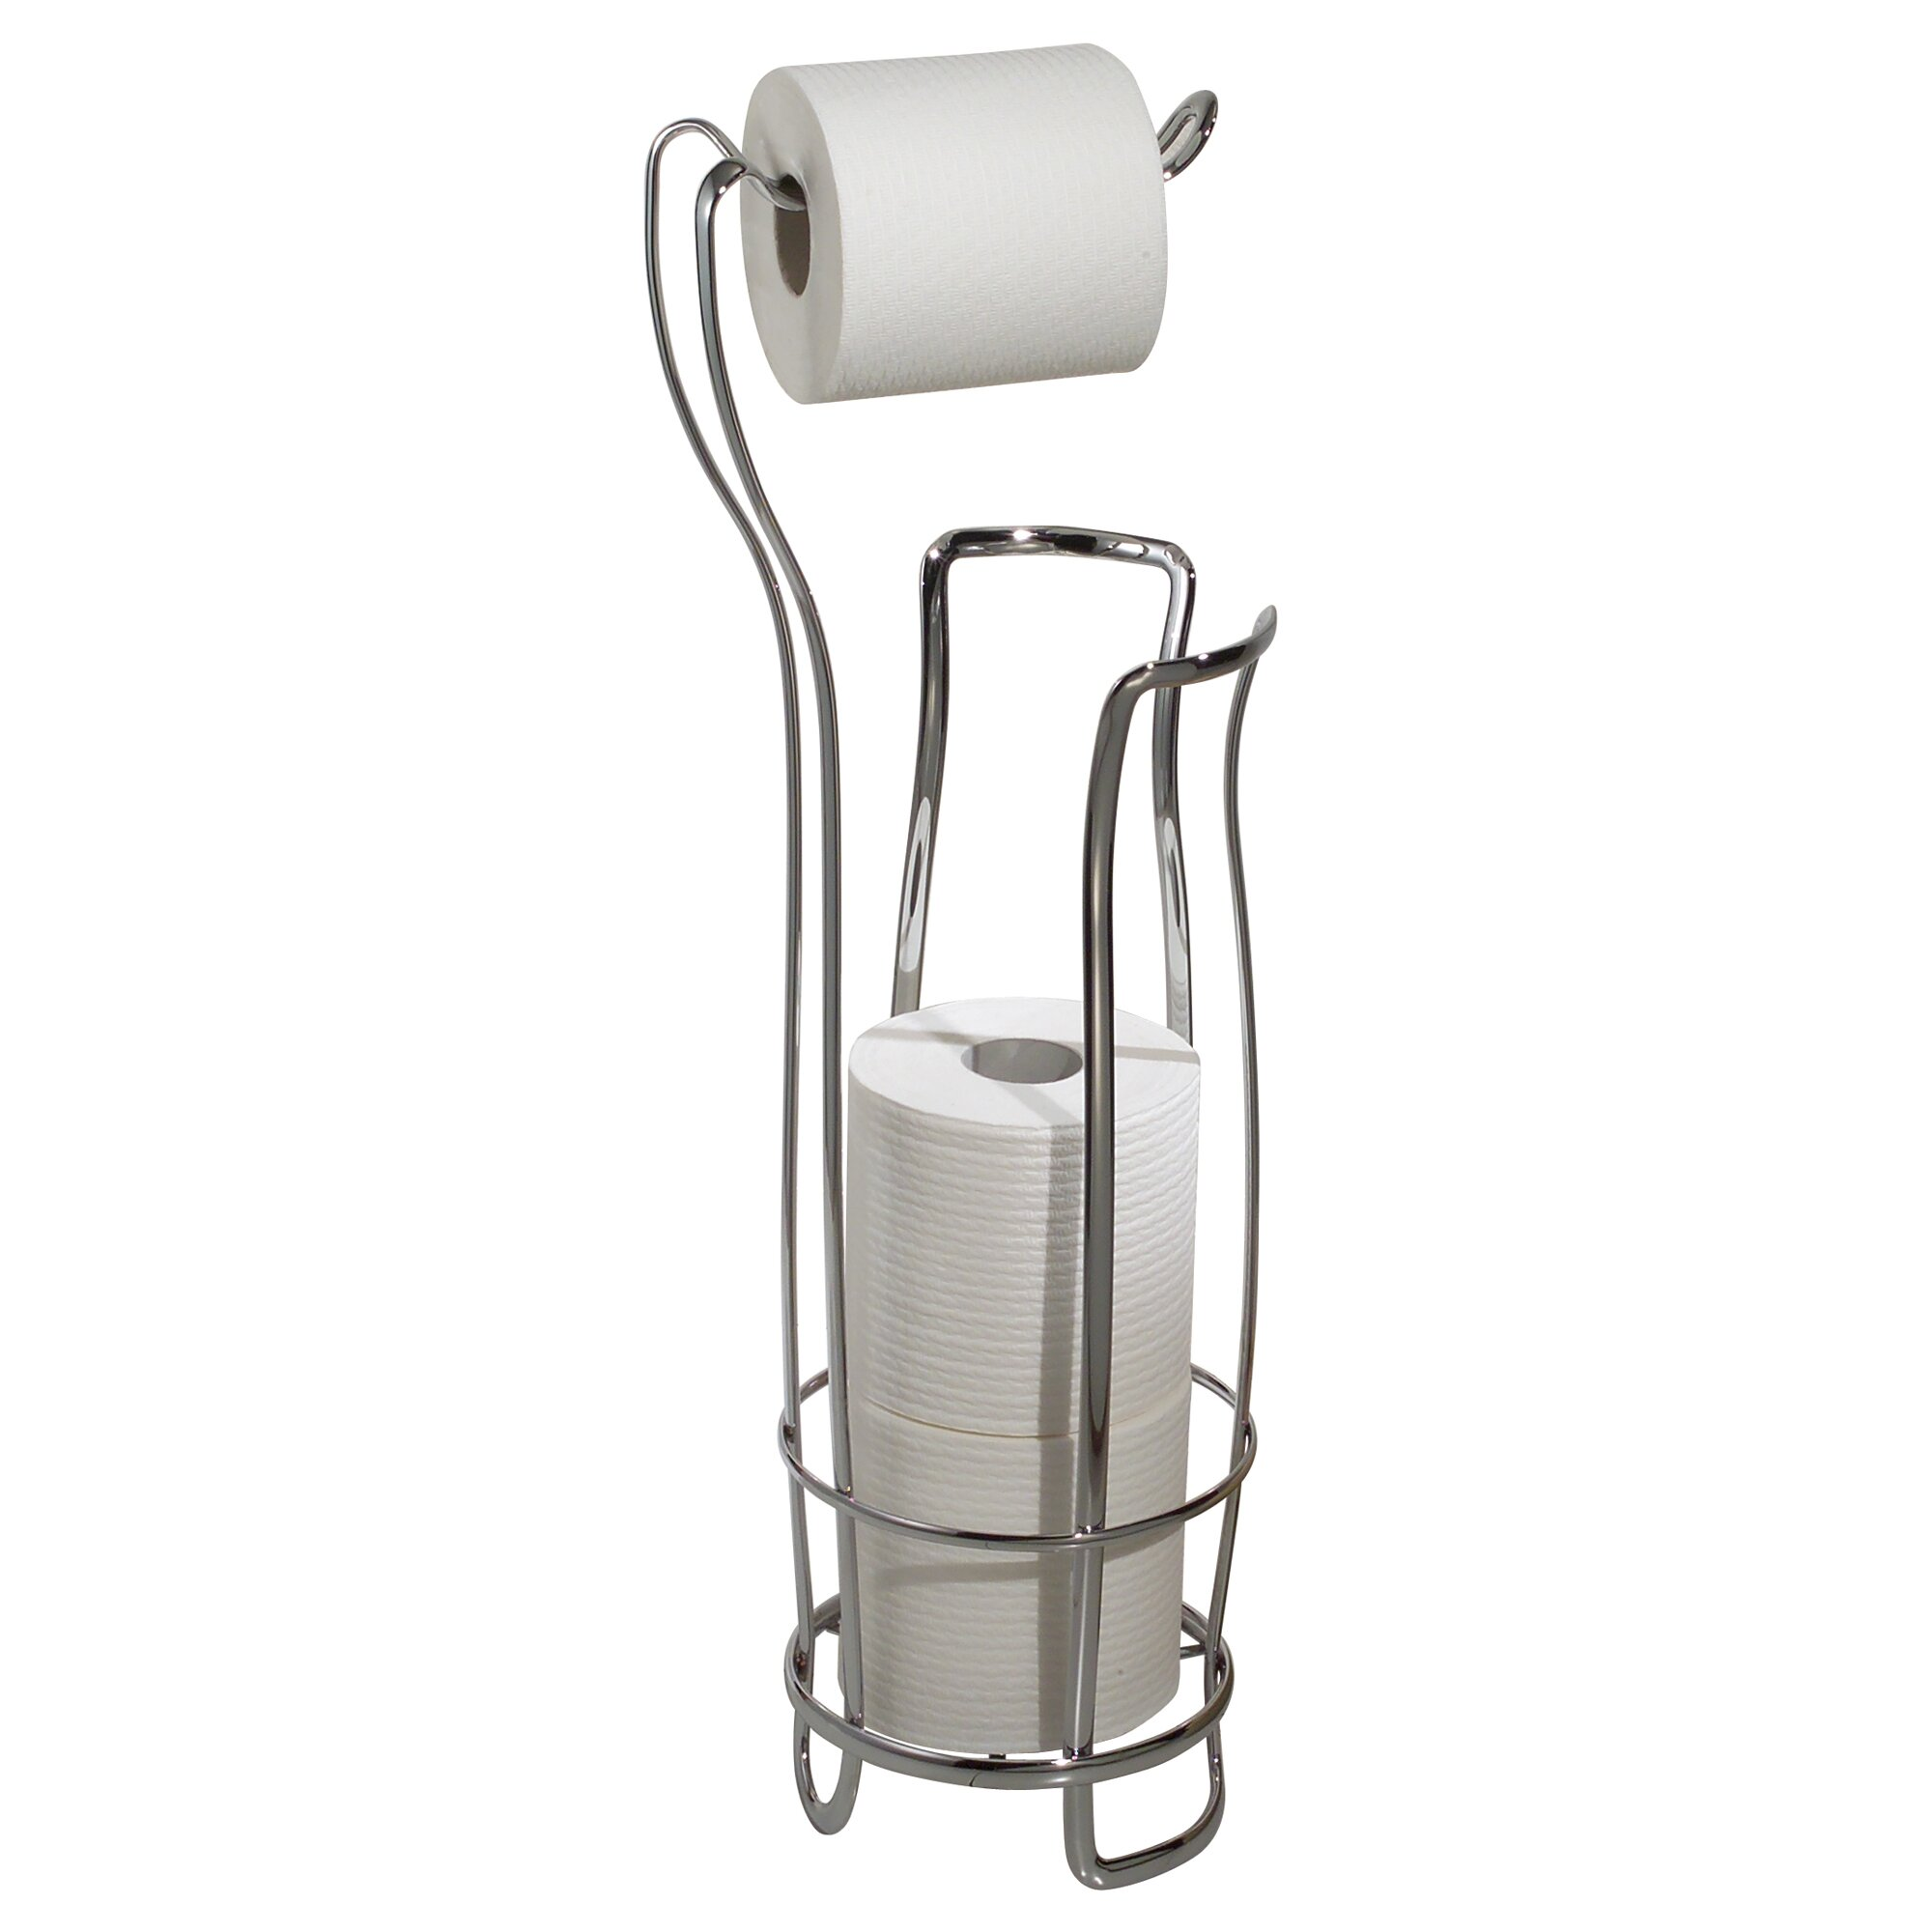 InterDesign Toilet Paper Holder and Reserve & Reviews